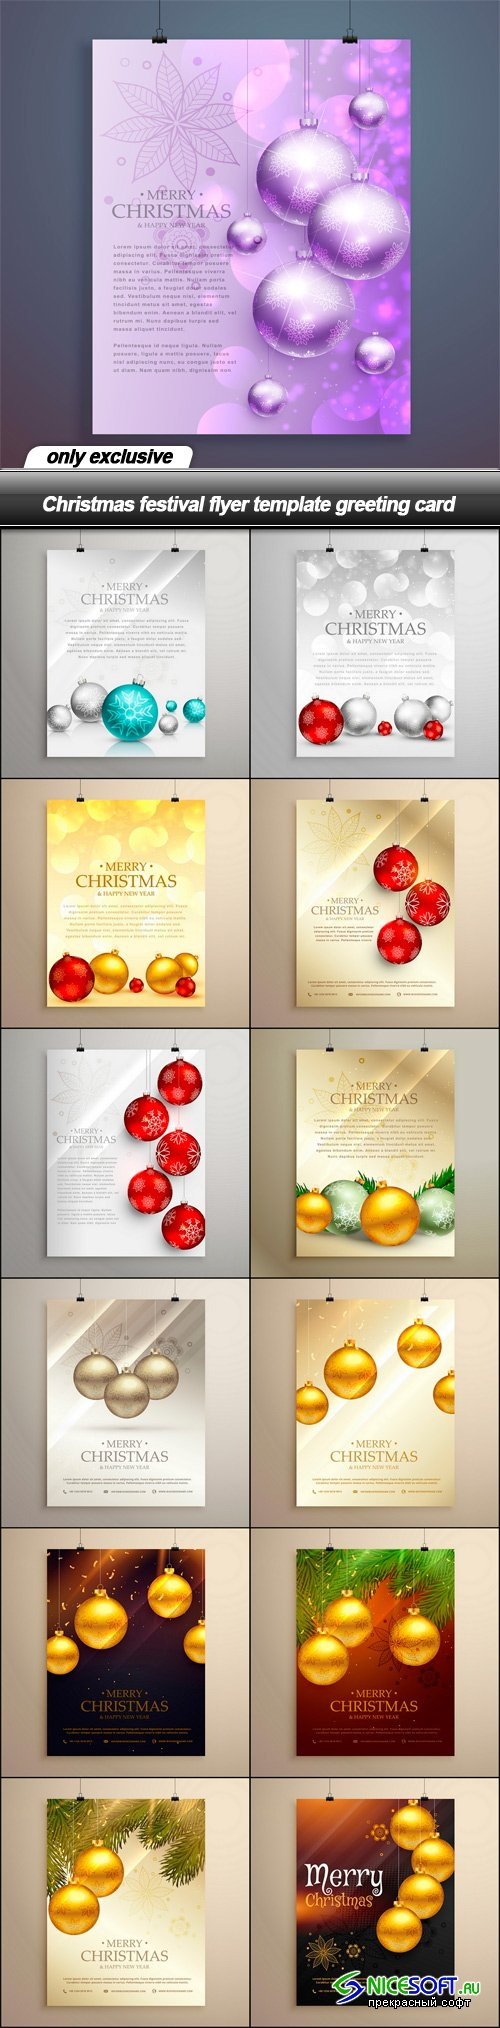 Christmas festival flyer template greeting card